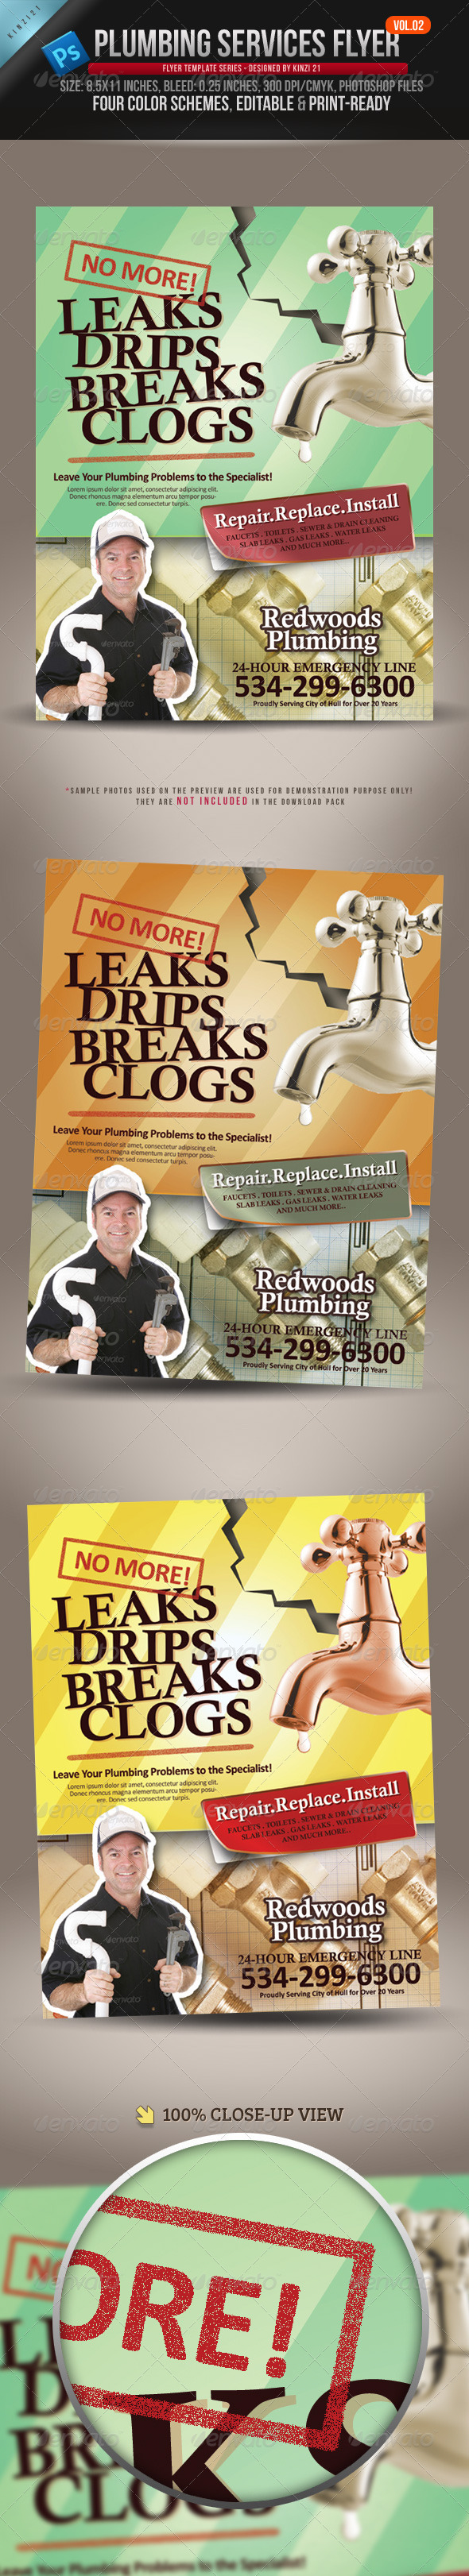 Plumbing Services Flyer Vol.02 - Corporate Flyers